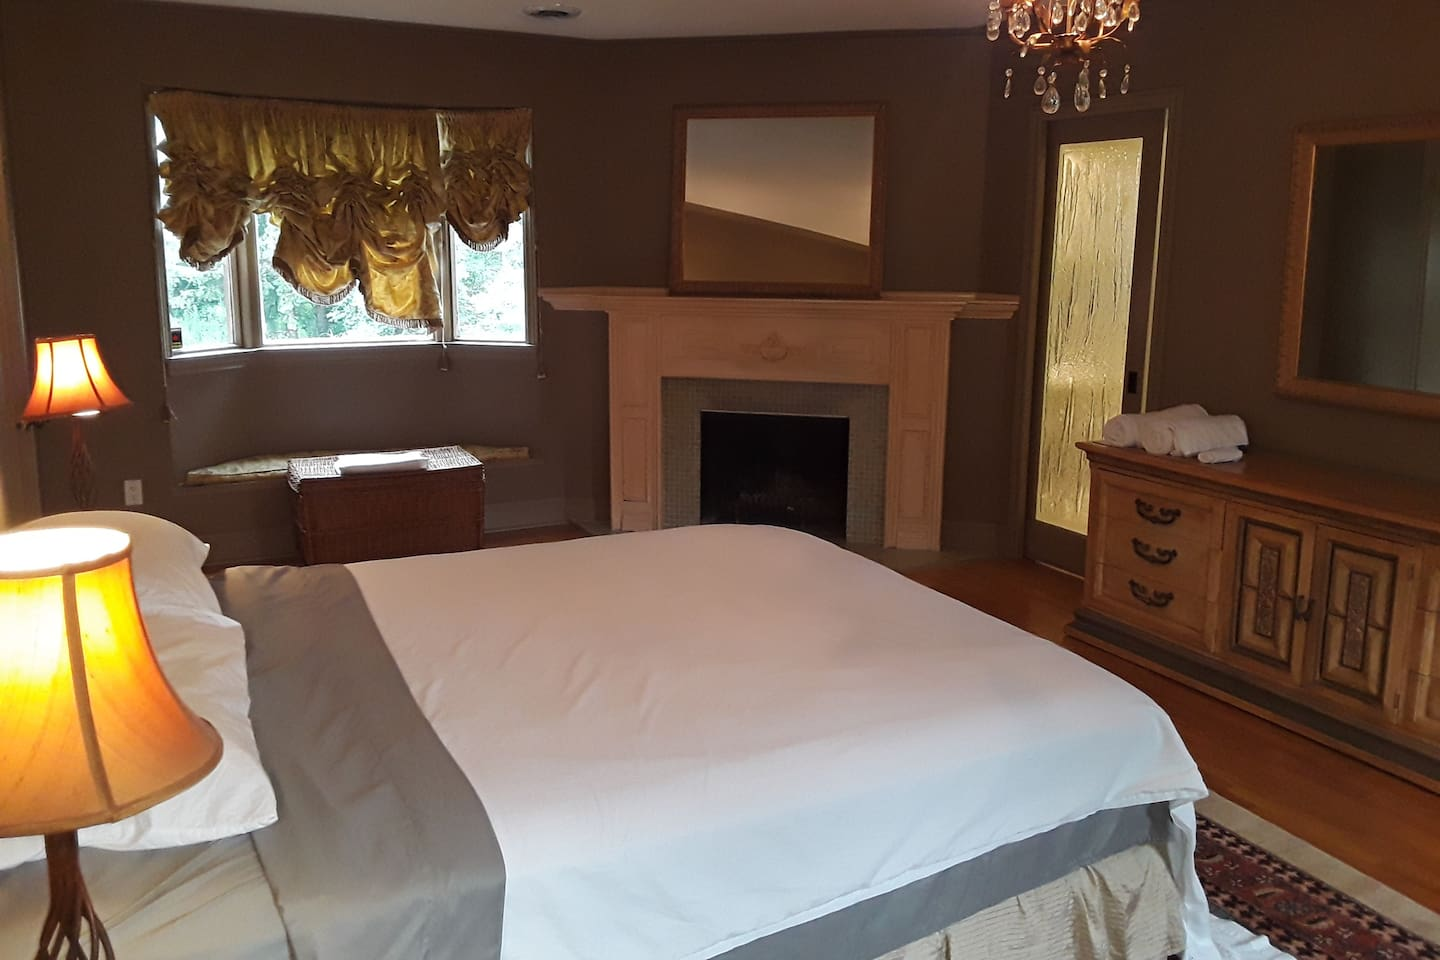 Your away from home oasis awaits you. If you are single or a couple, you will love what this room has to offer. Large, spacious modern, a great bed for fantastic sleeps, a private bathroom with glass rain shower and steam bath.  Can you ask for more?